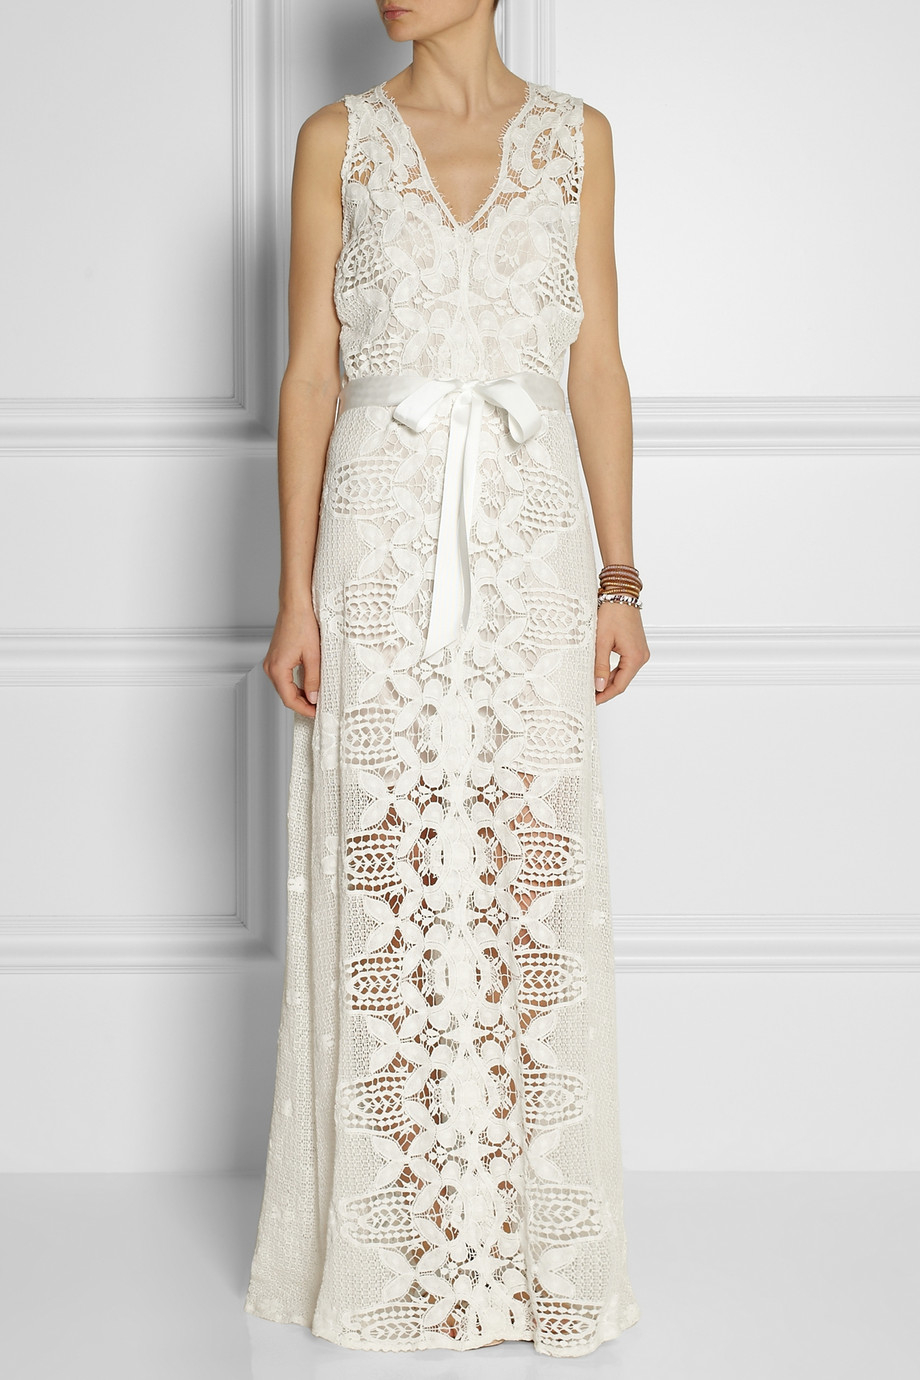 Lyst - Miguelina Eve Crocheted-Lace Maxi Dress in White